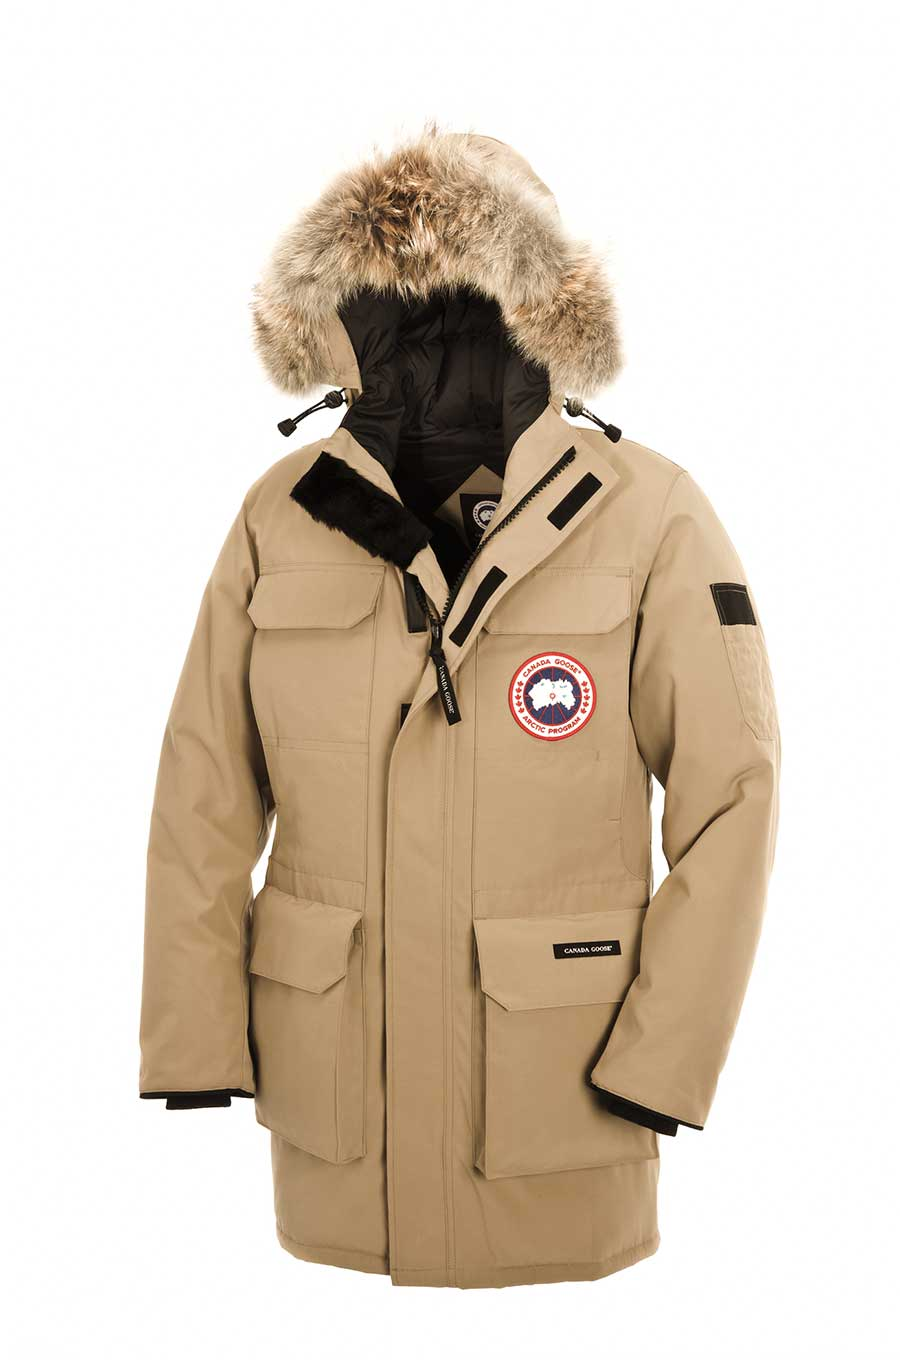 Canada Goose winter jackets | Stuarts London